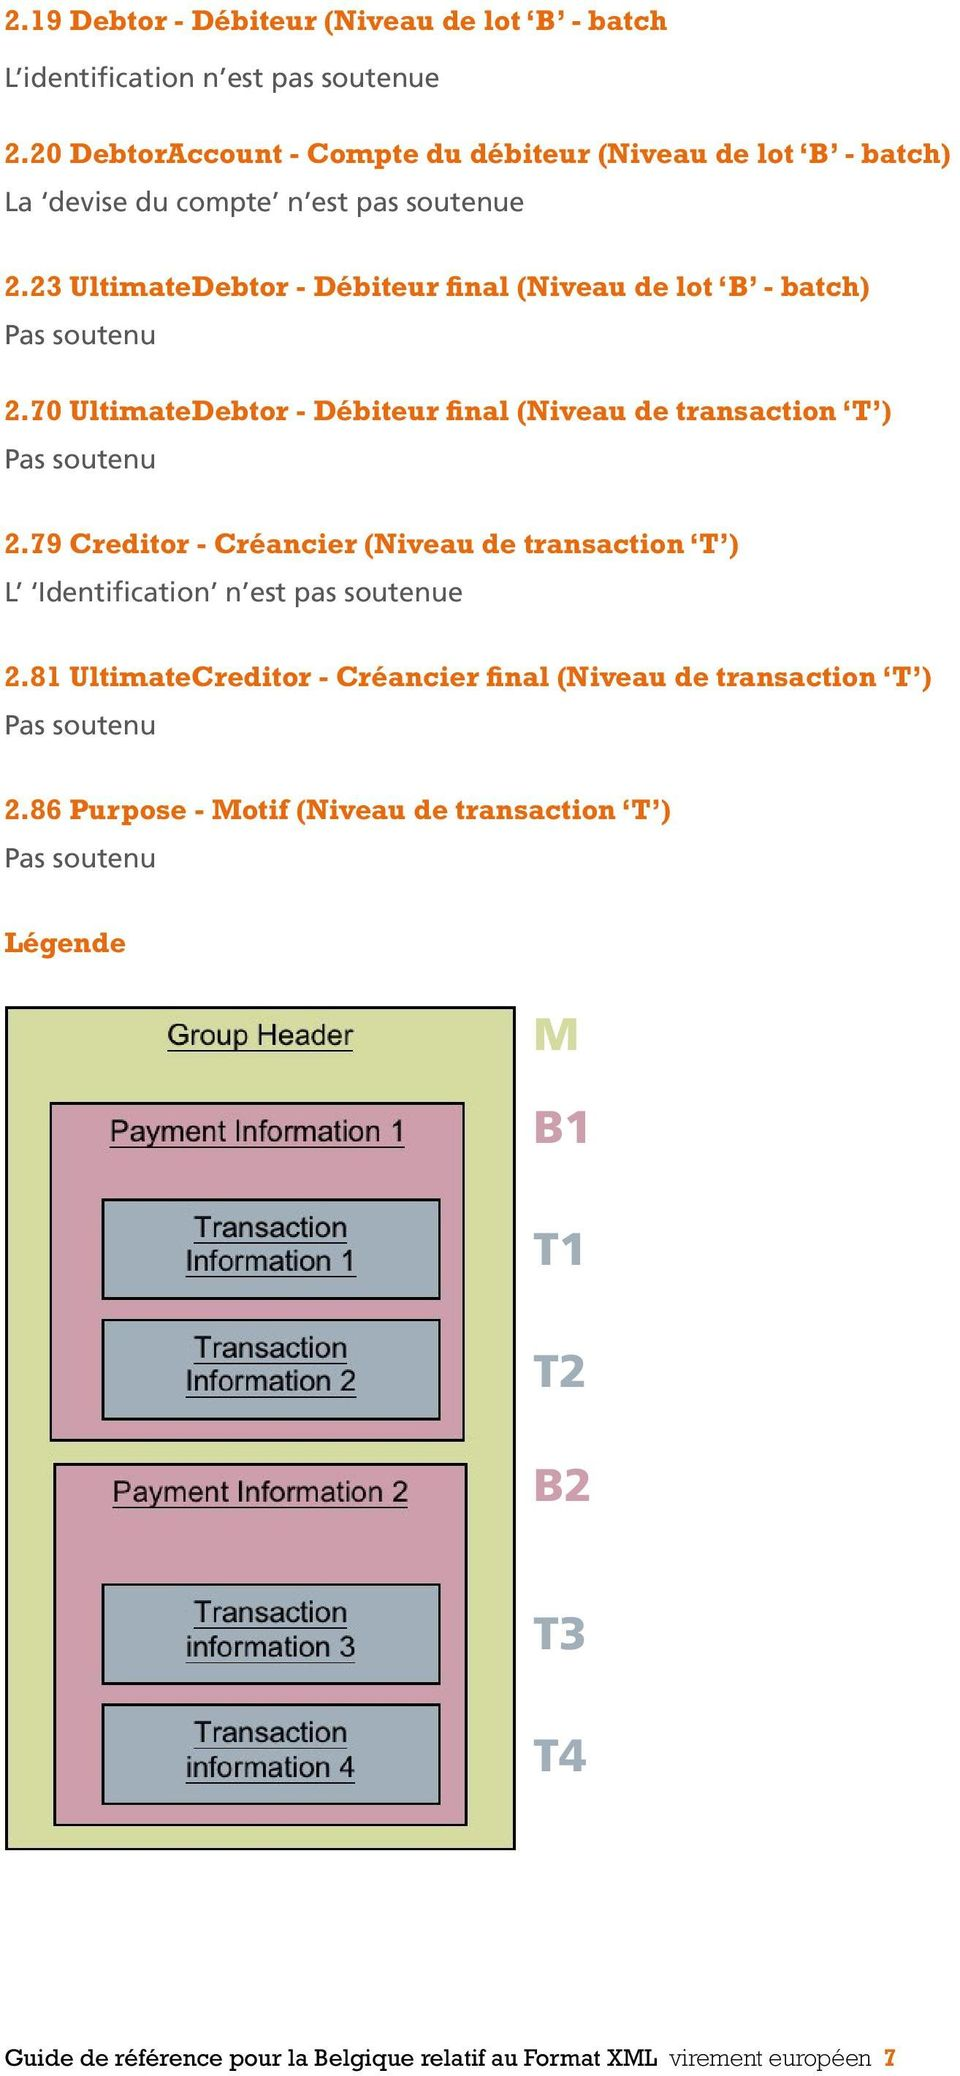 23 UltimateDebtor - Débiteur final (Niveau de lot B - batch) Pas soutenu 2.70 UltimateDebtor - Débiteur final (Niveau de transaction T ) Pas soutenu 2.